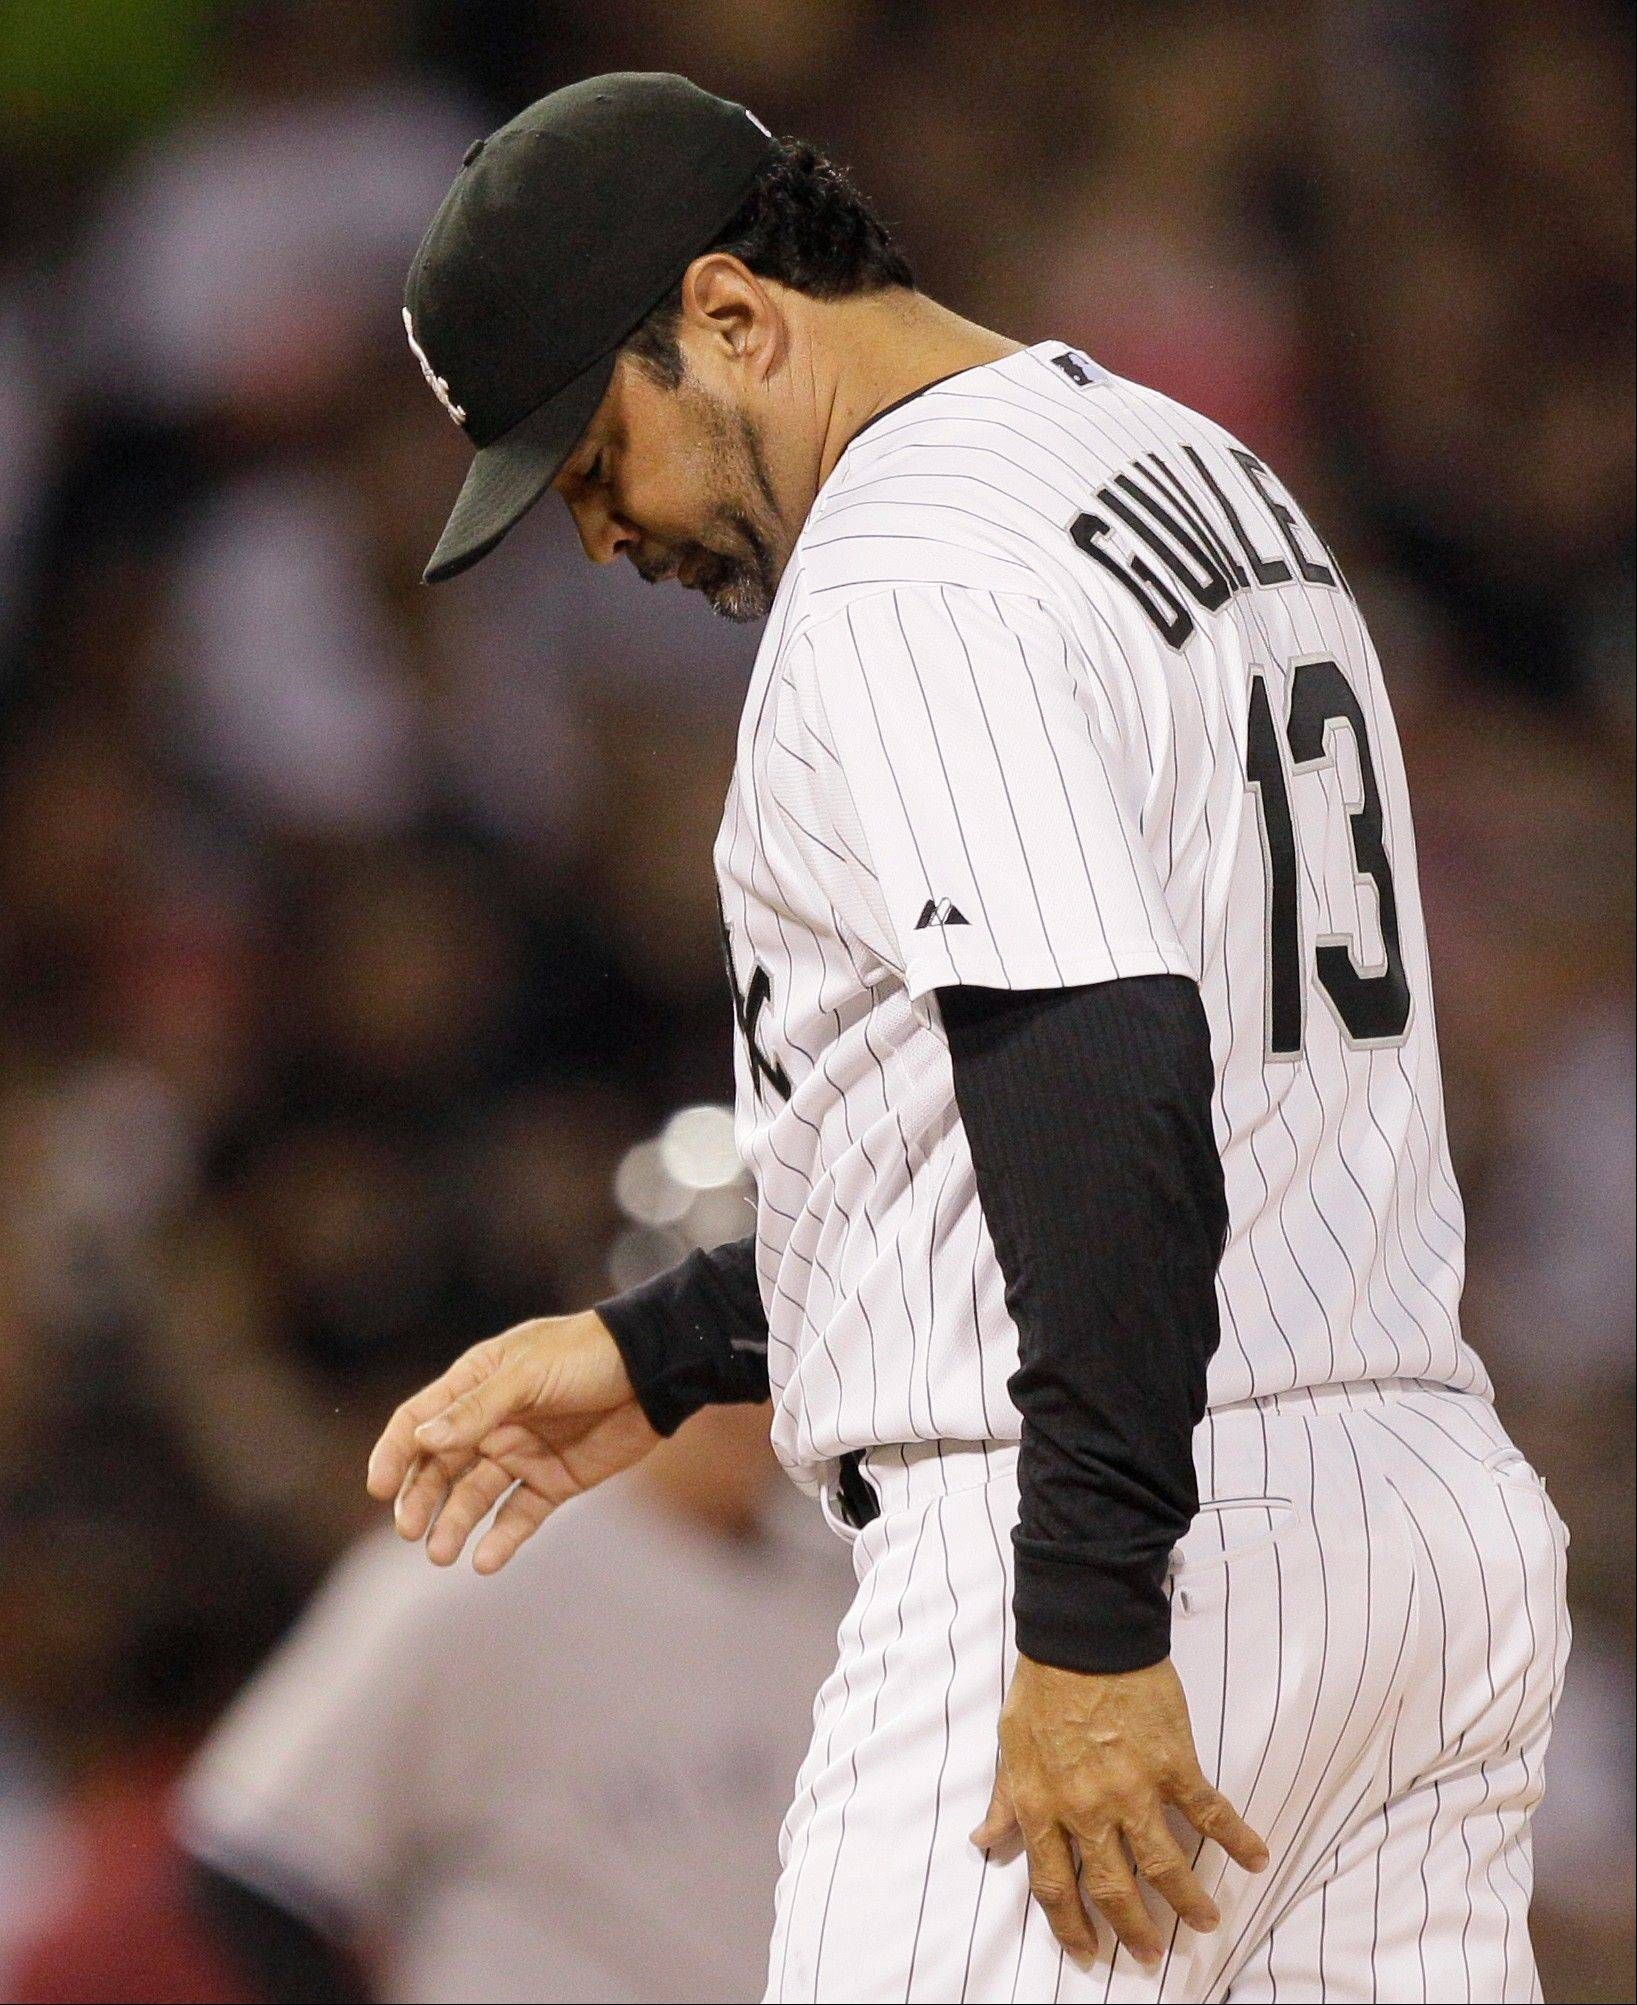 White Sox manager Ozzie Guillen walks back to the dugout after removing starting pitcher Philip Humber on Thursday night.